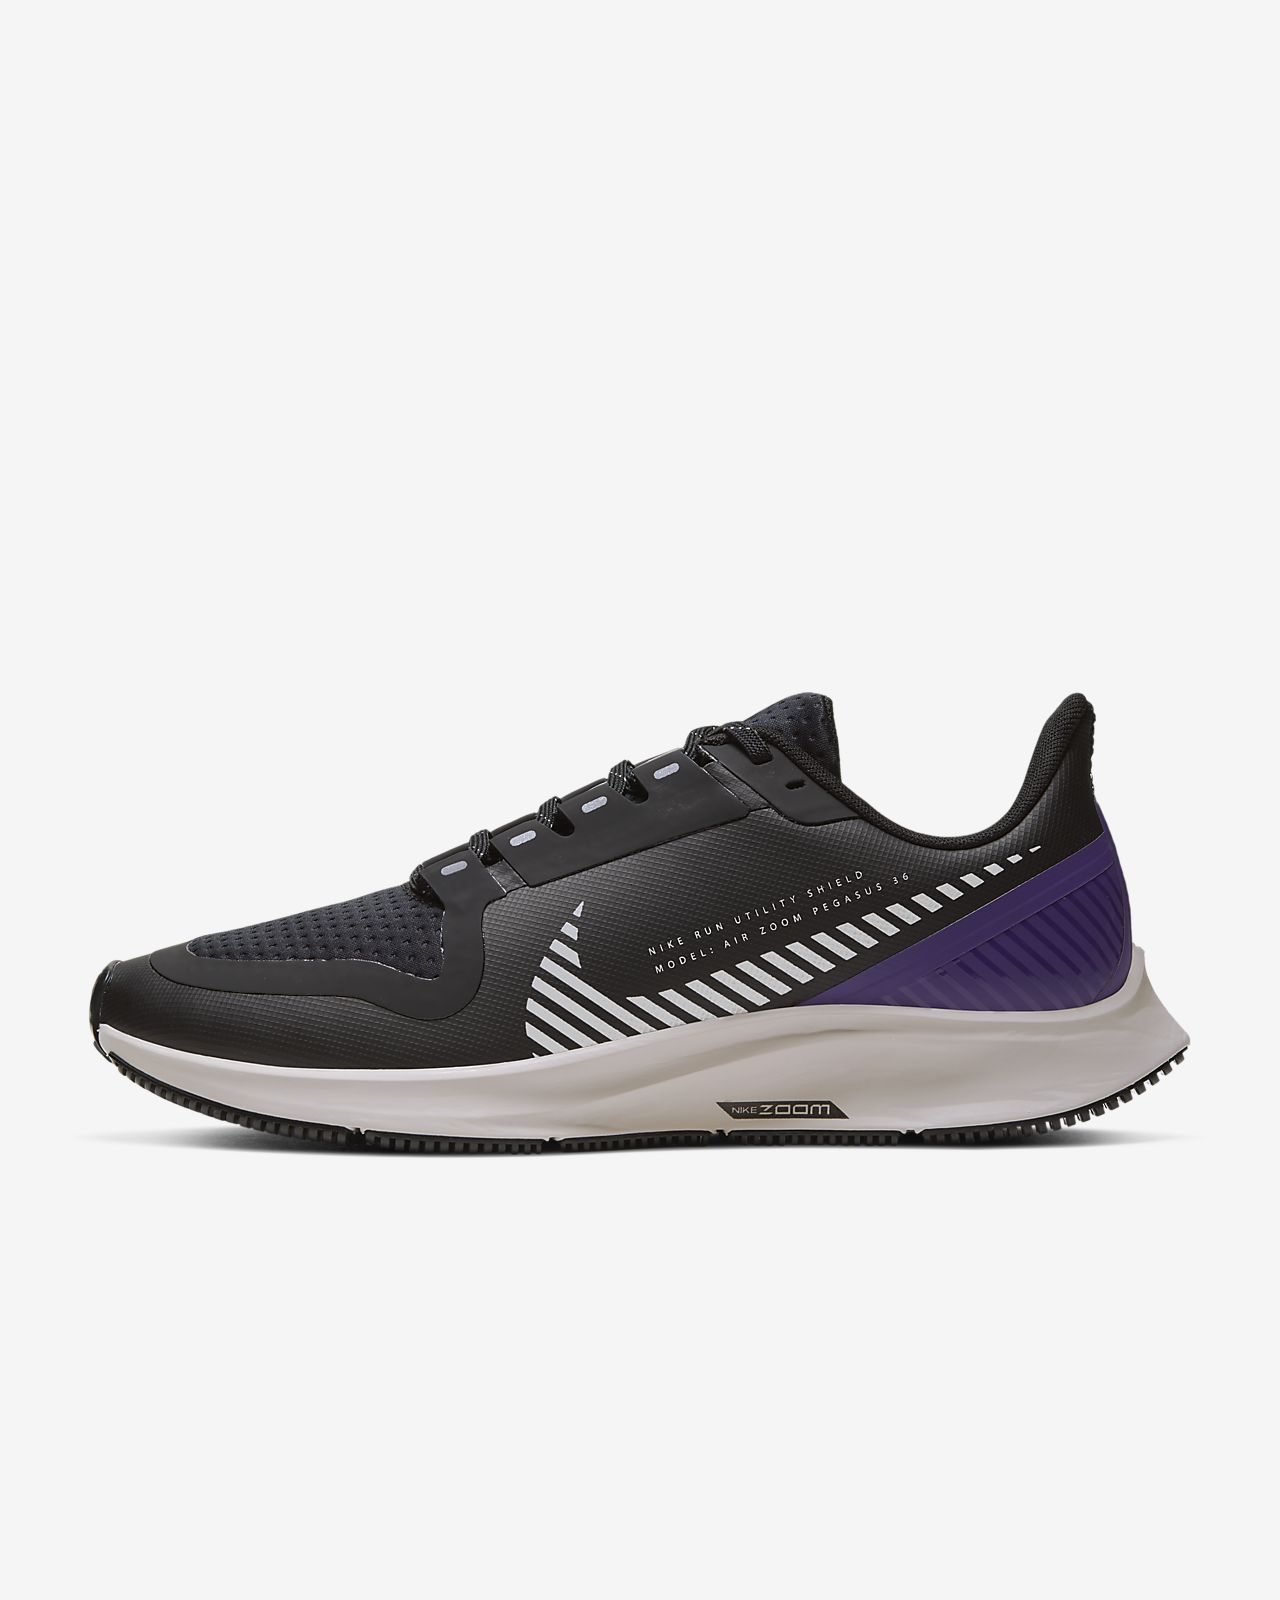 Nike Air Zoom Pegasus 36 Shield Women's Running Shoe